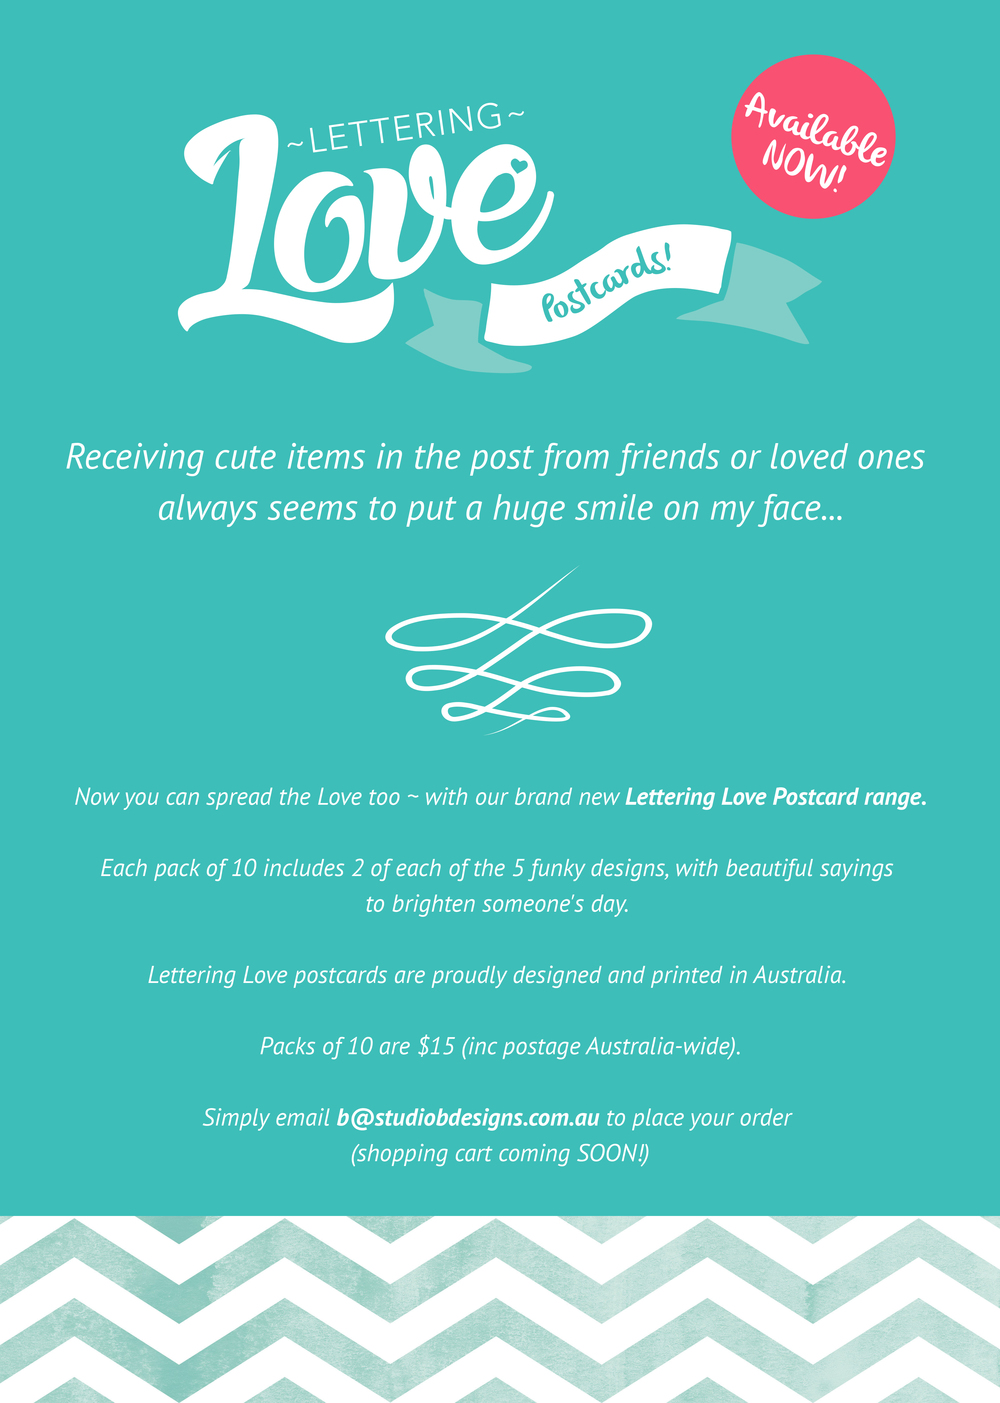 Lettering Love page.jpg